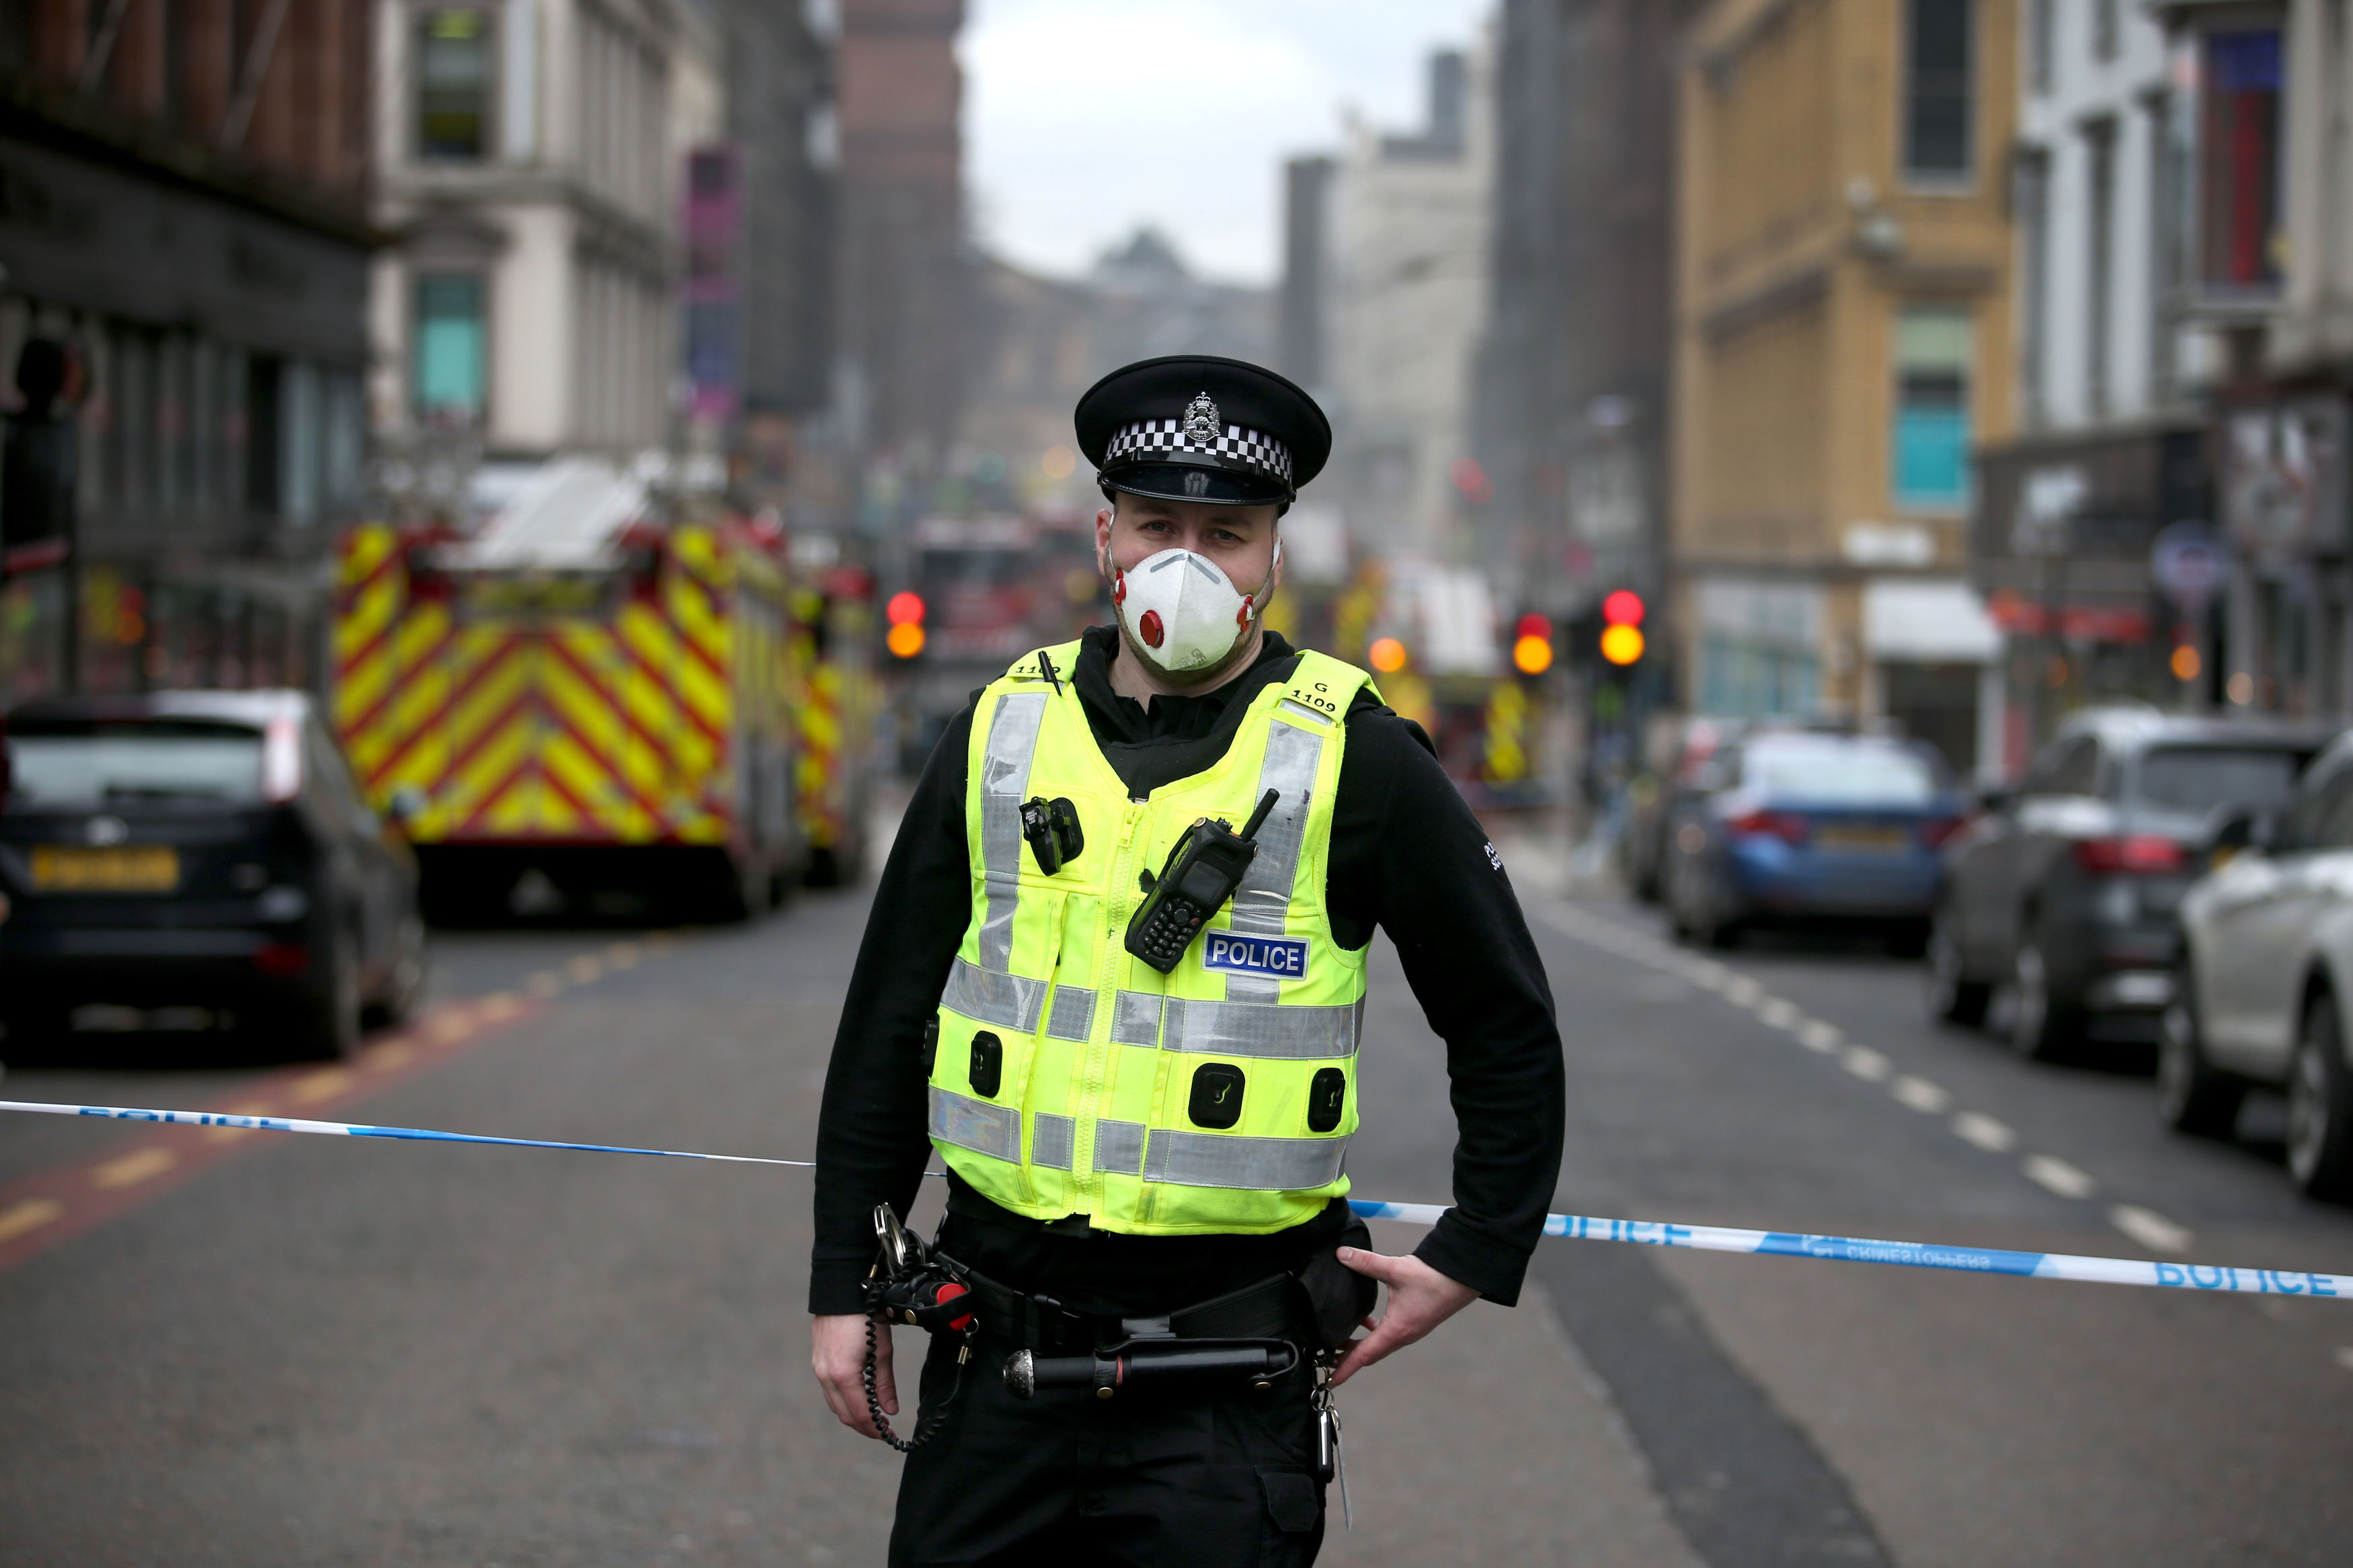 Emergency services are dealing with fire in Glasgow city centre